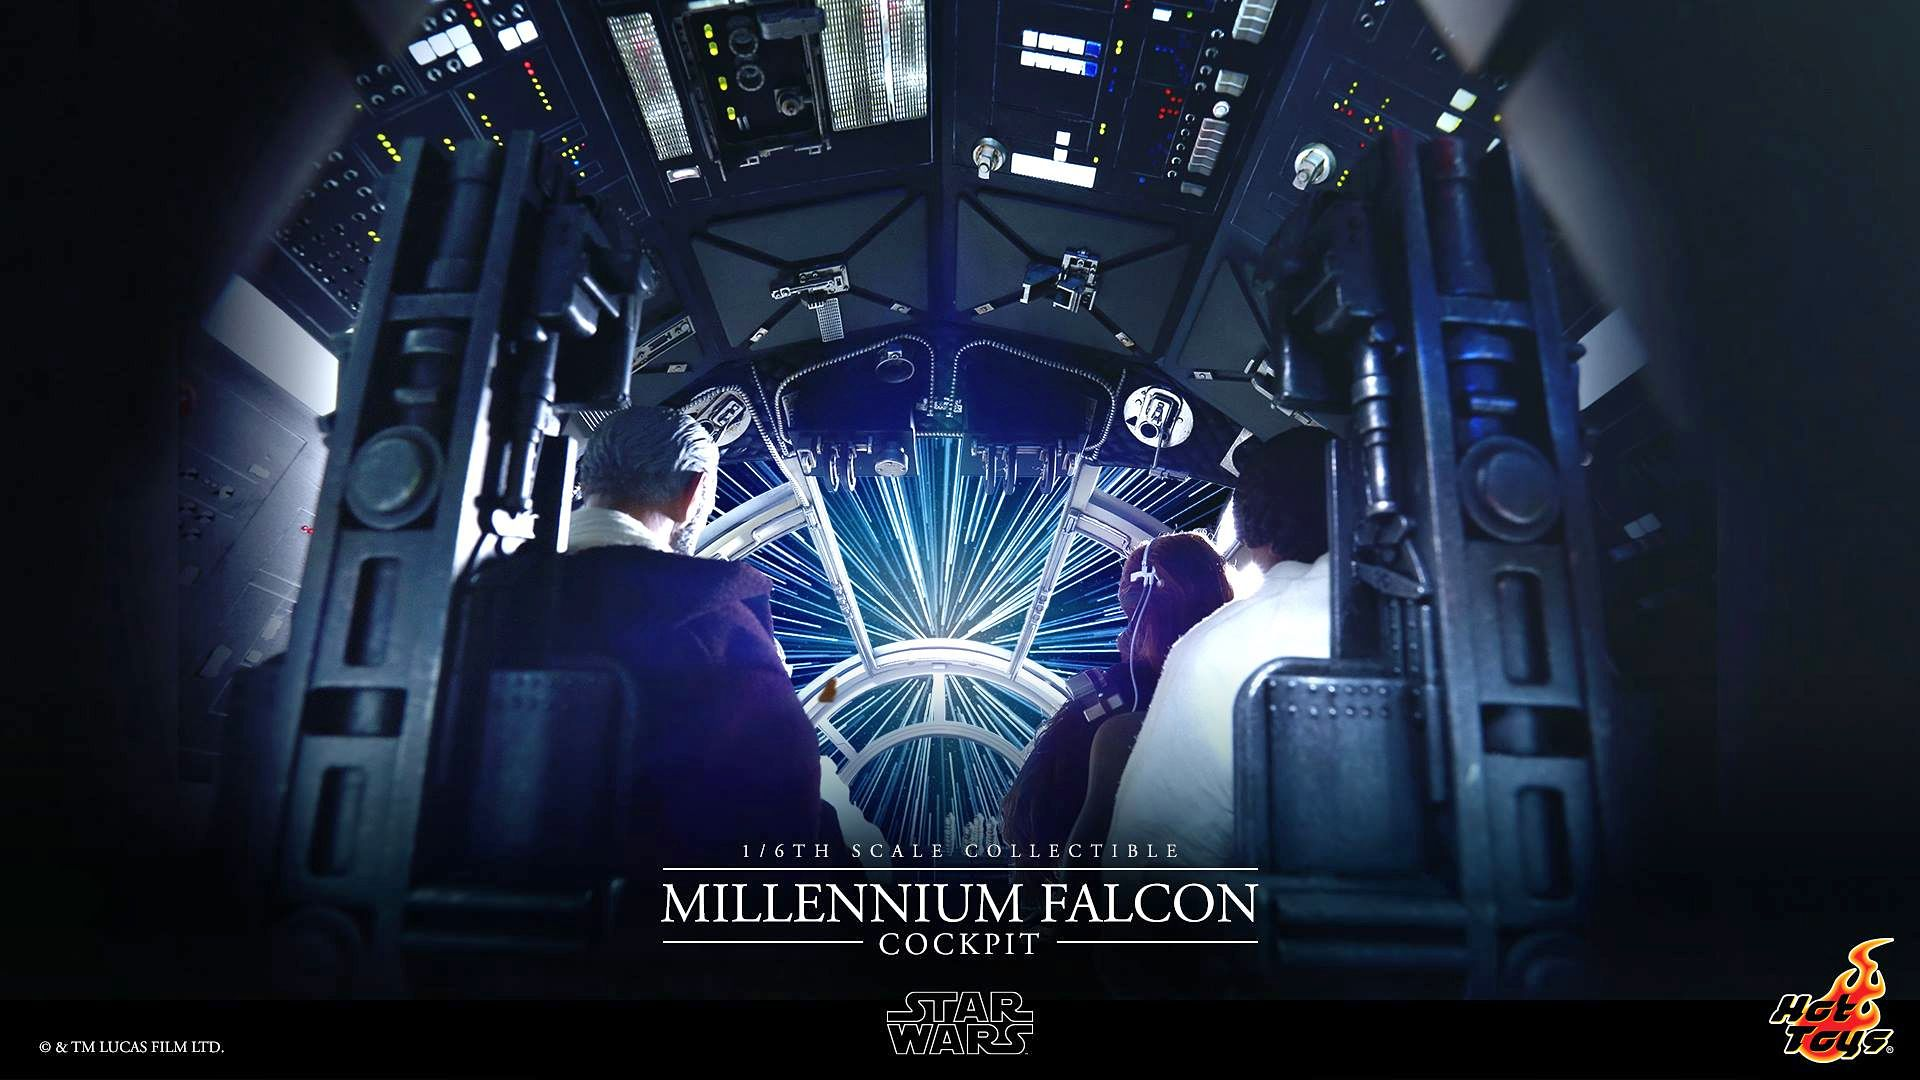 Displaying images for millenium falcon cockpit wallpaper - Star Wars The Force Awakens Millennium Falcon Images Worthy 1600 1119 Millenium Falcon Backgrounds